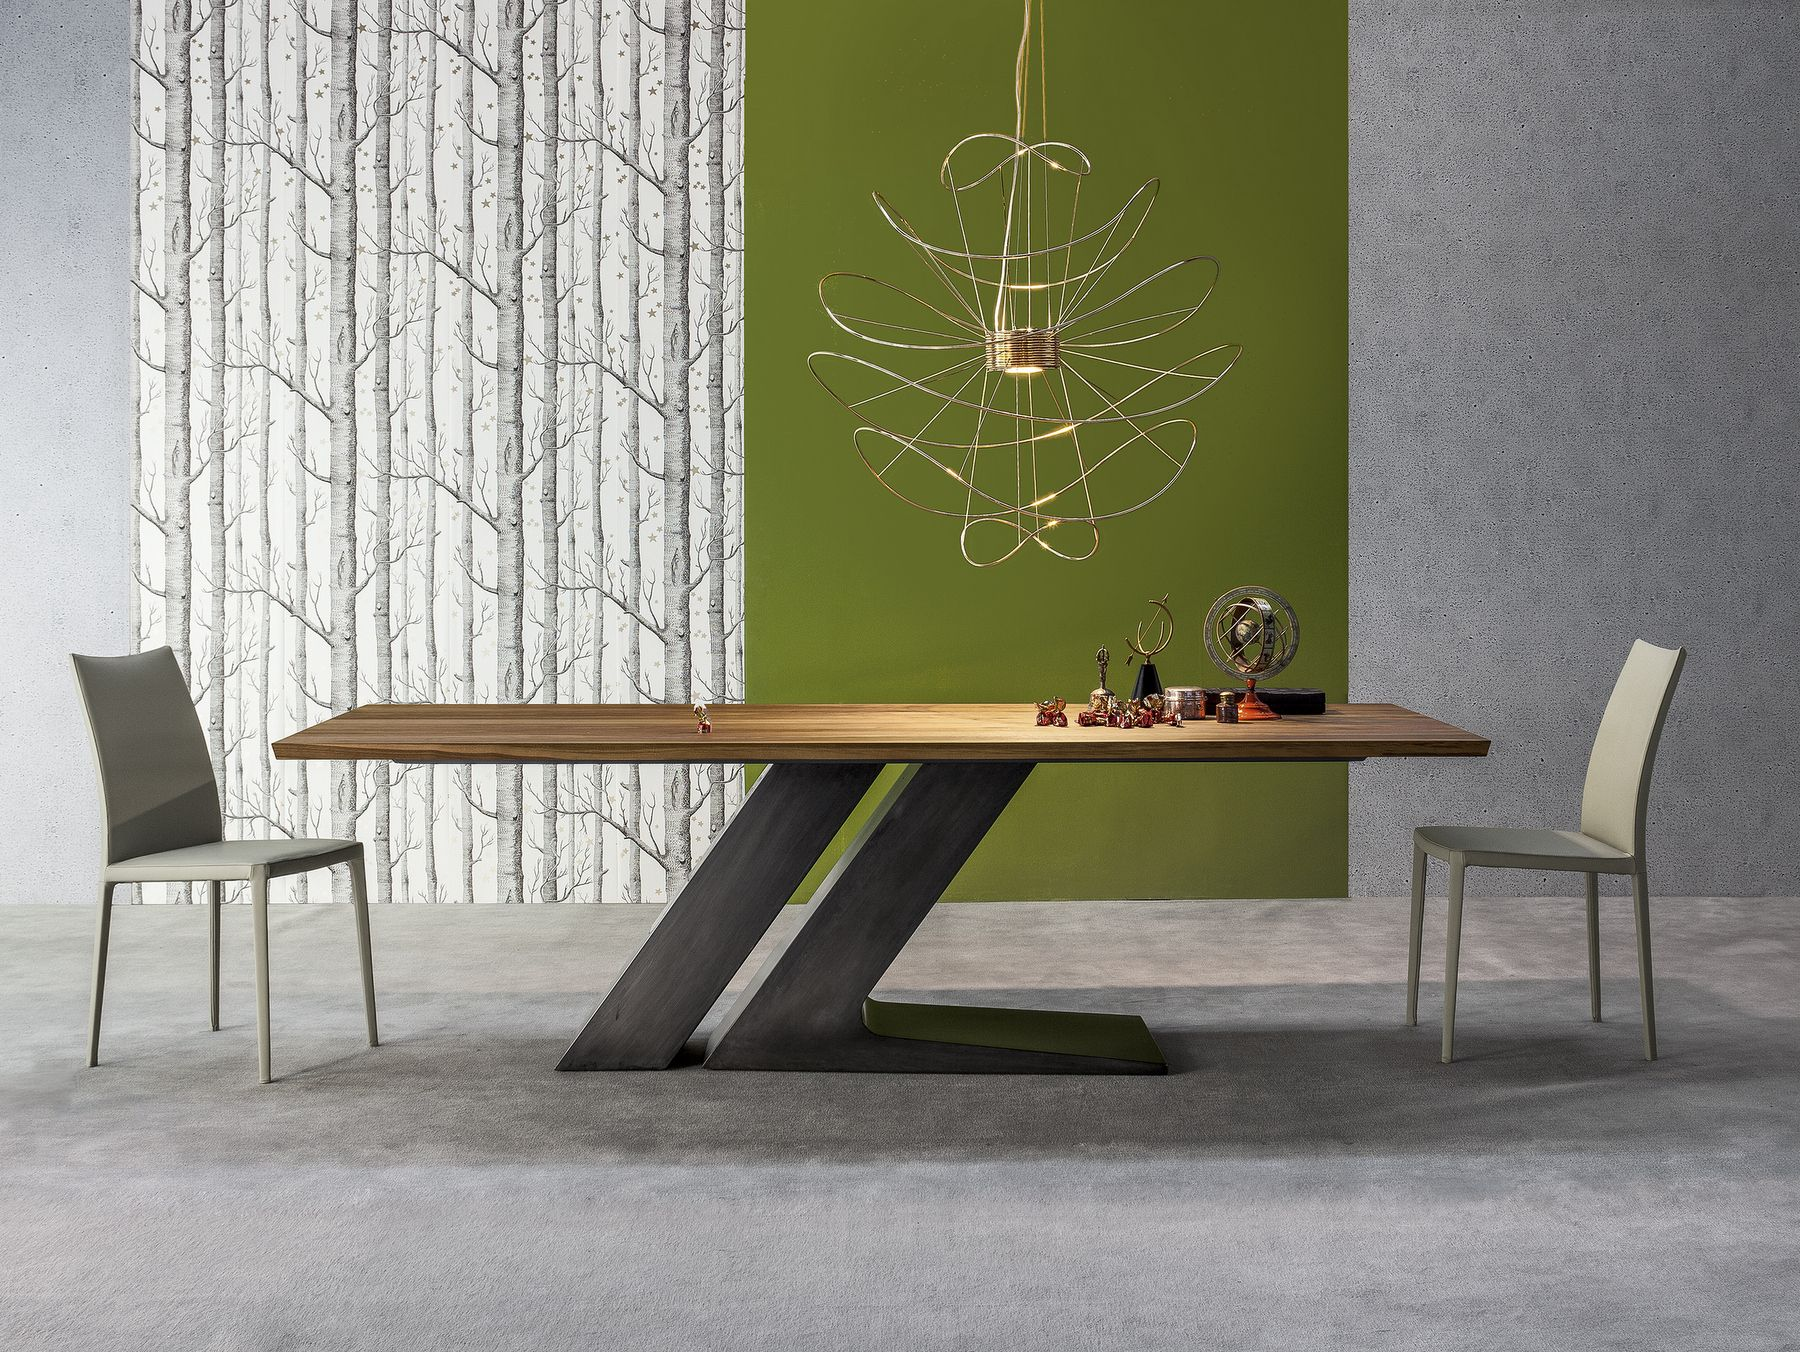 Sedie Bonaldo ~ Tl table by bonaldo design giuseppe viganò furniture table